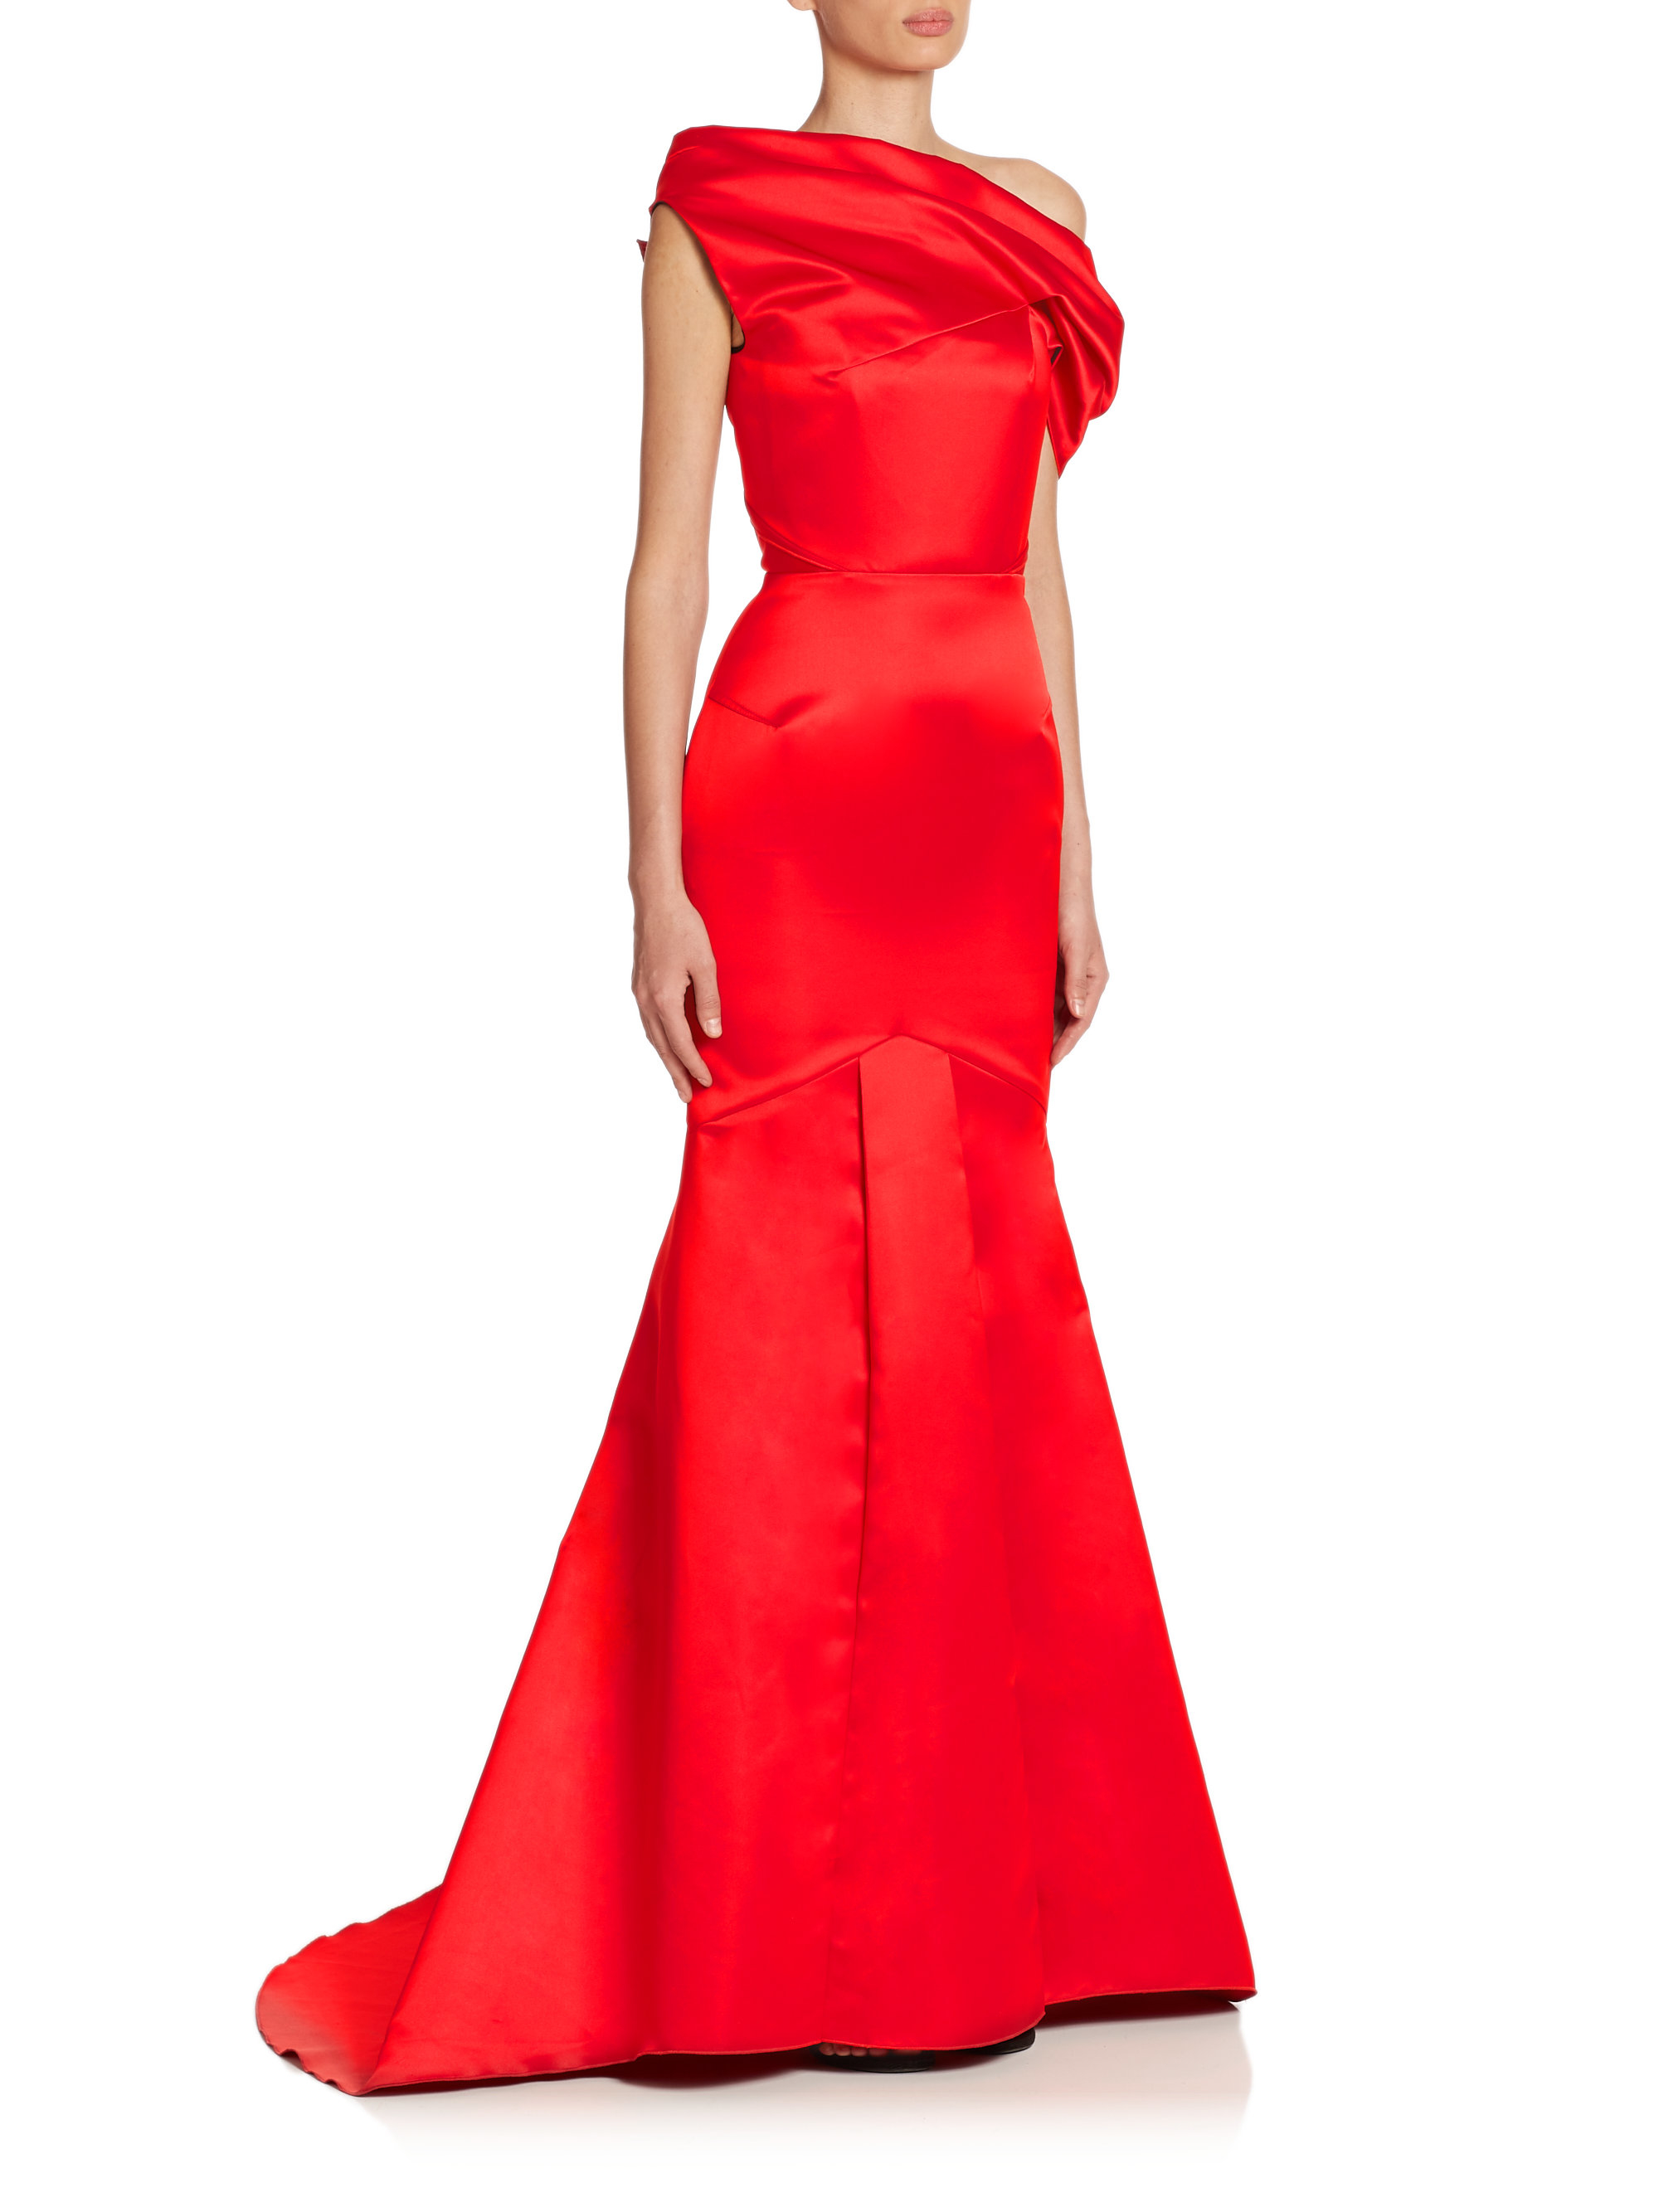 iPhone designer iphone cases : Roland mouret Seneca Satin Off-shoulder Gown in Red : Lyst